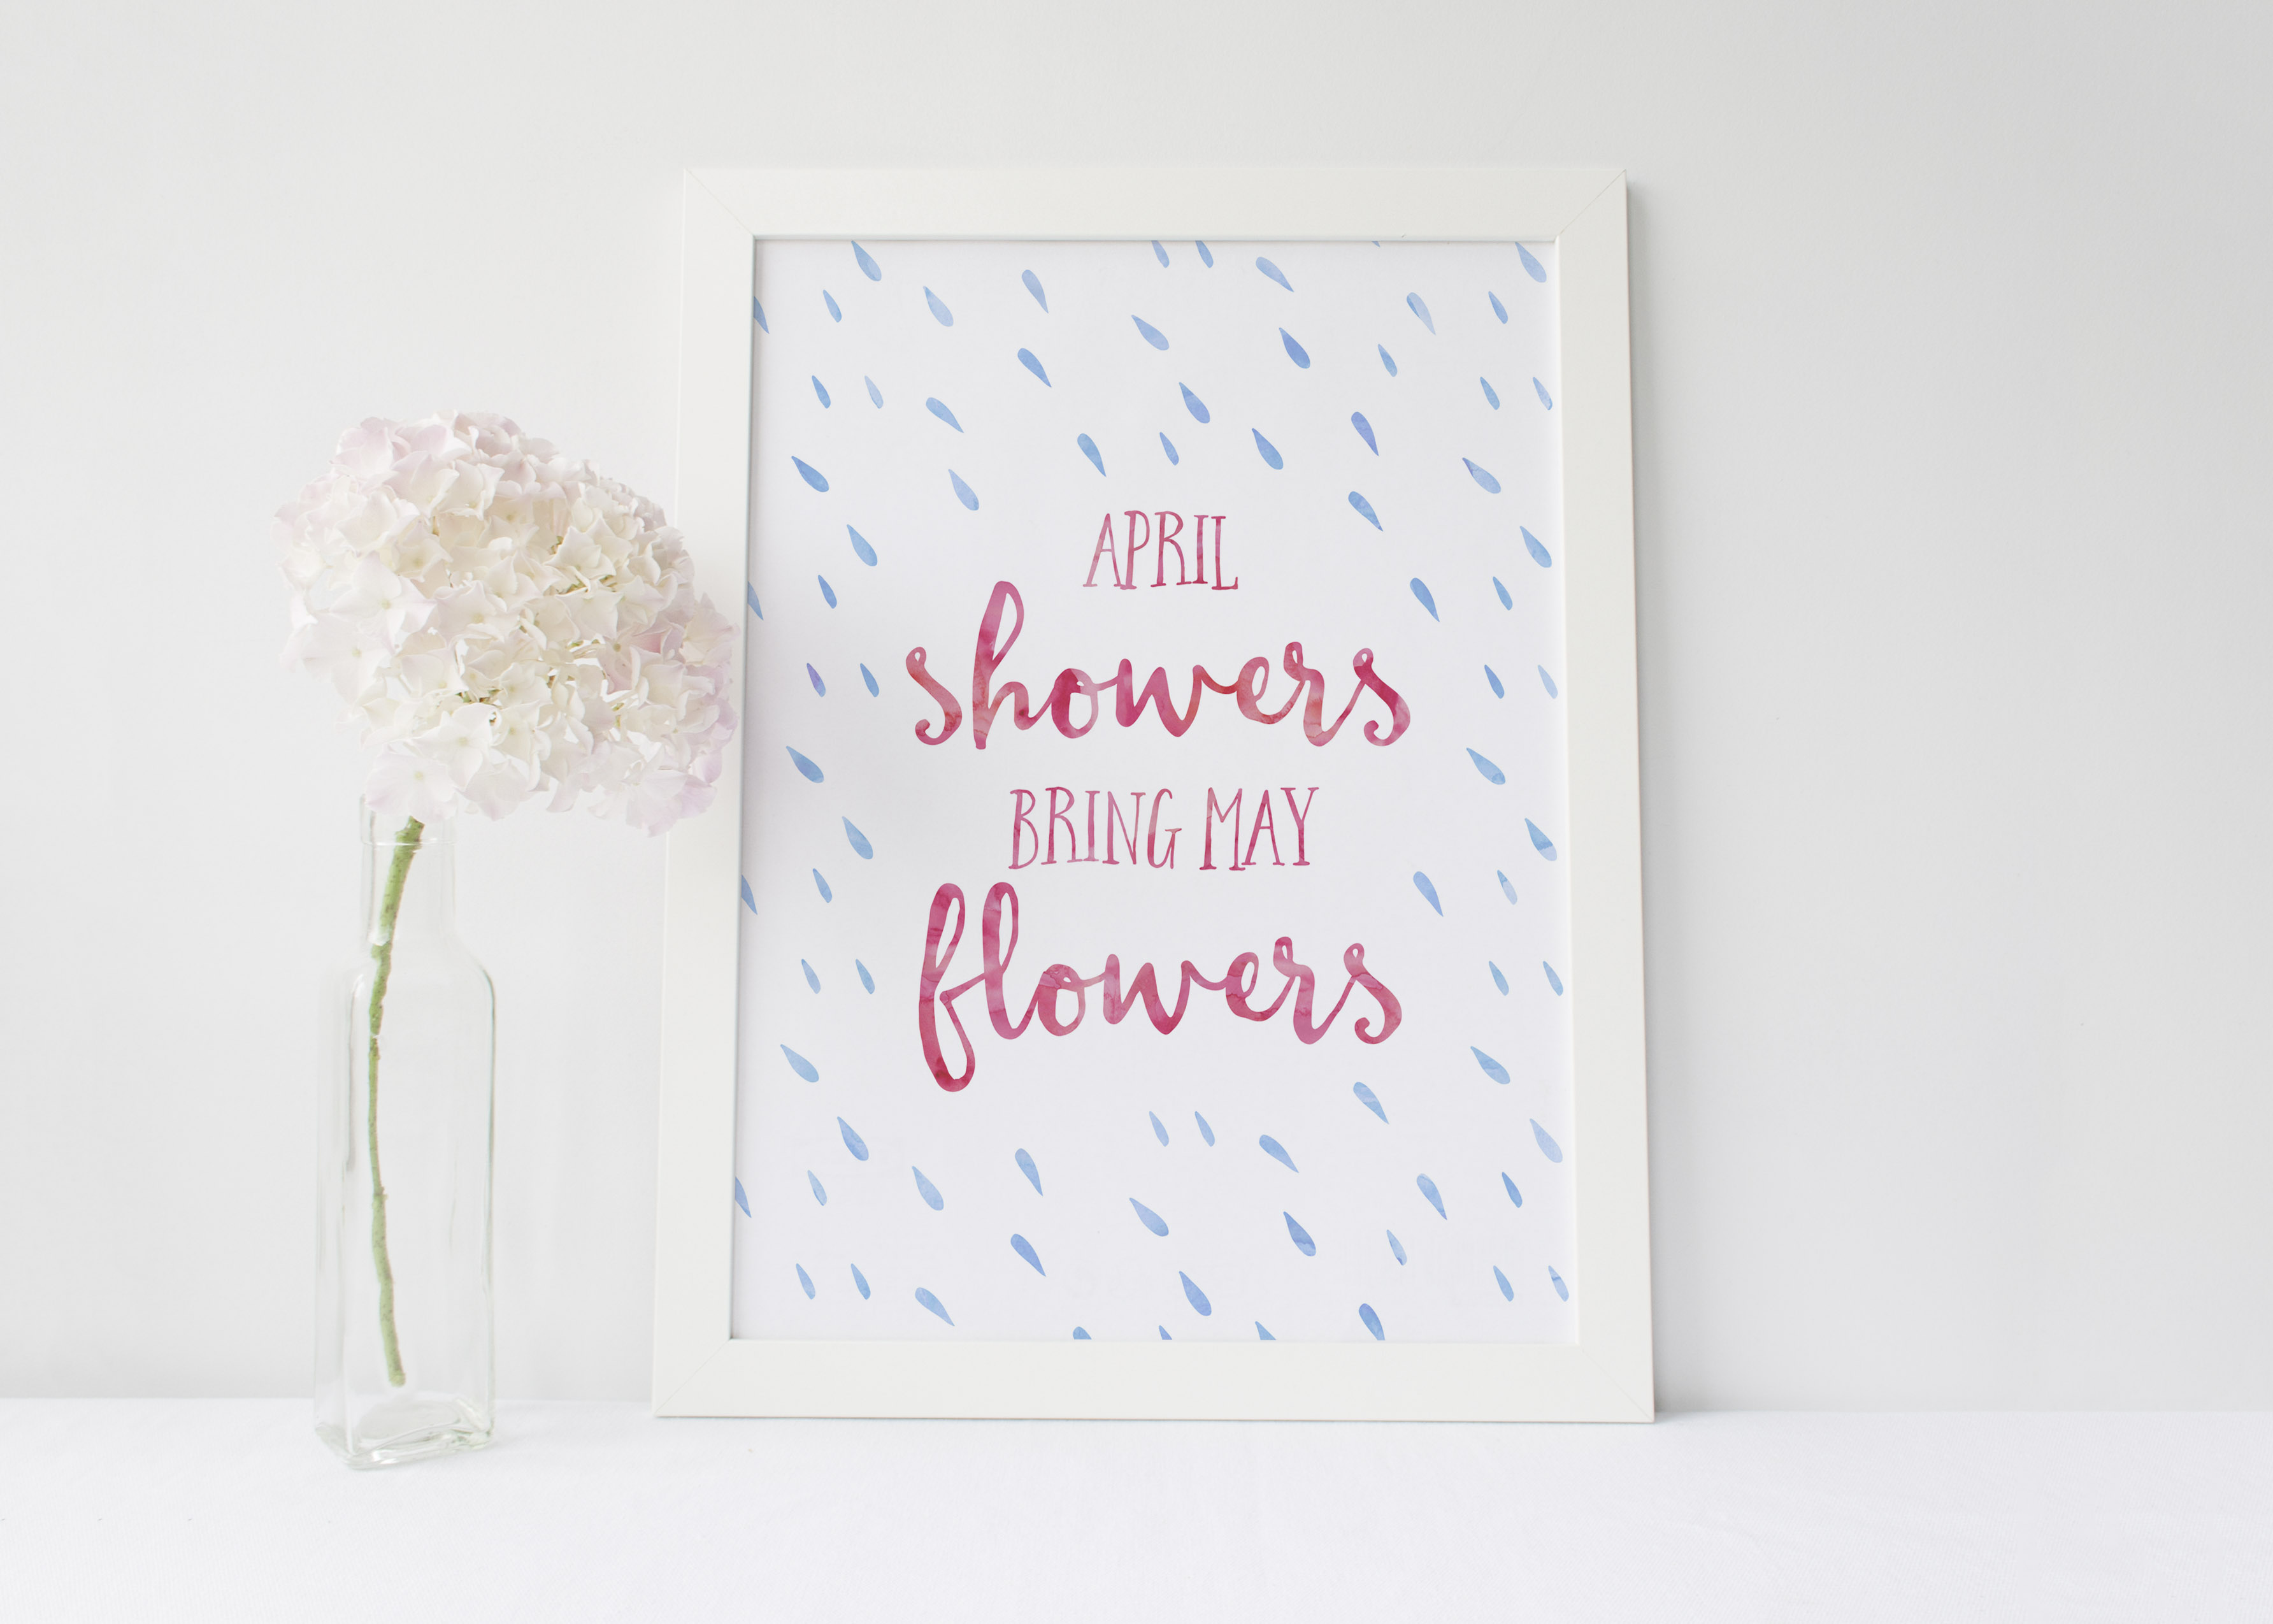 April Showers Bring May Flowers | Free Printable - Our Handcrafted Life